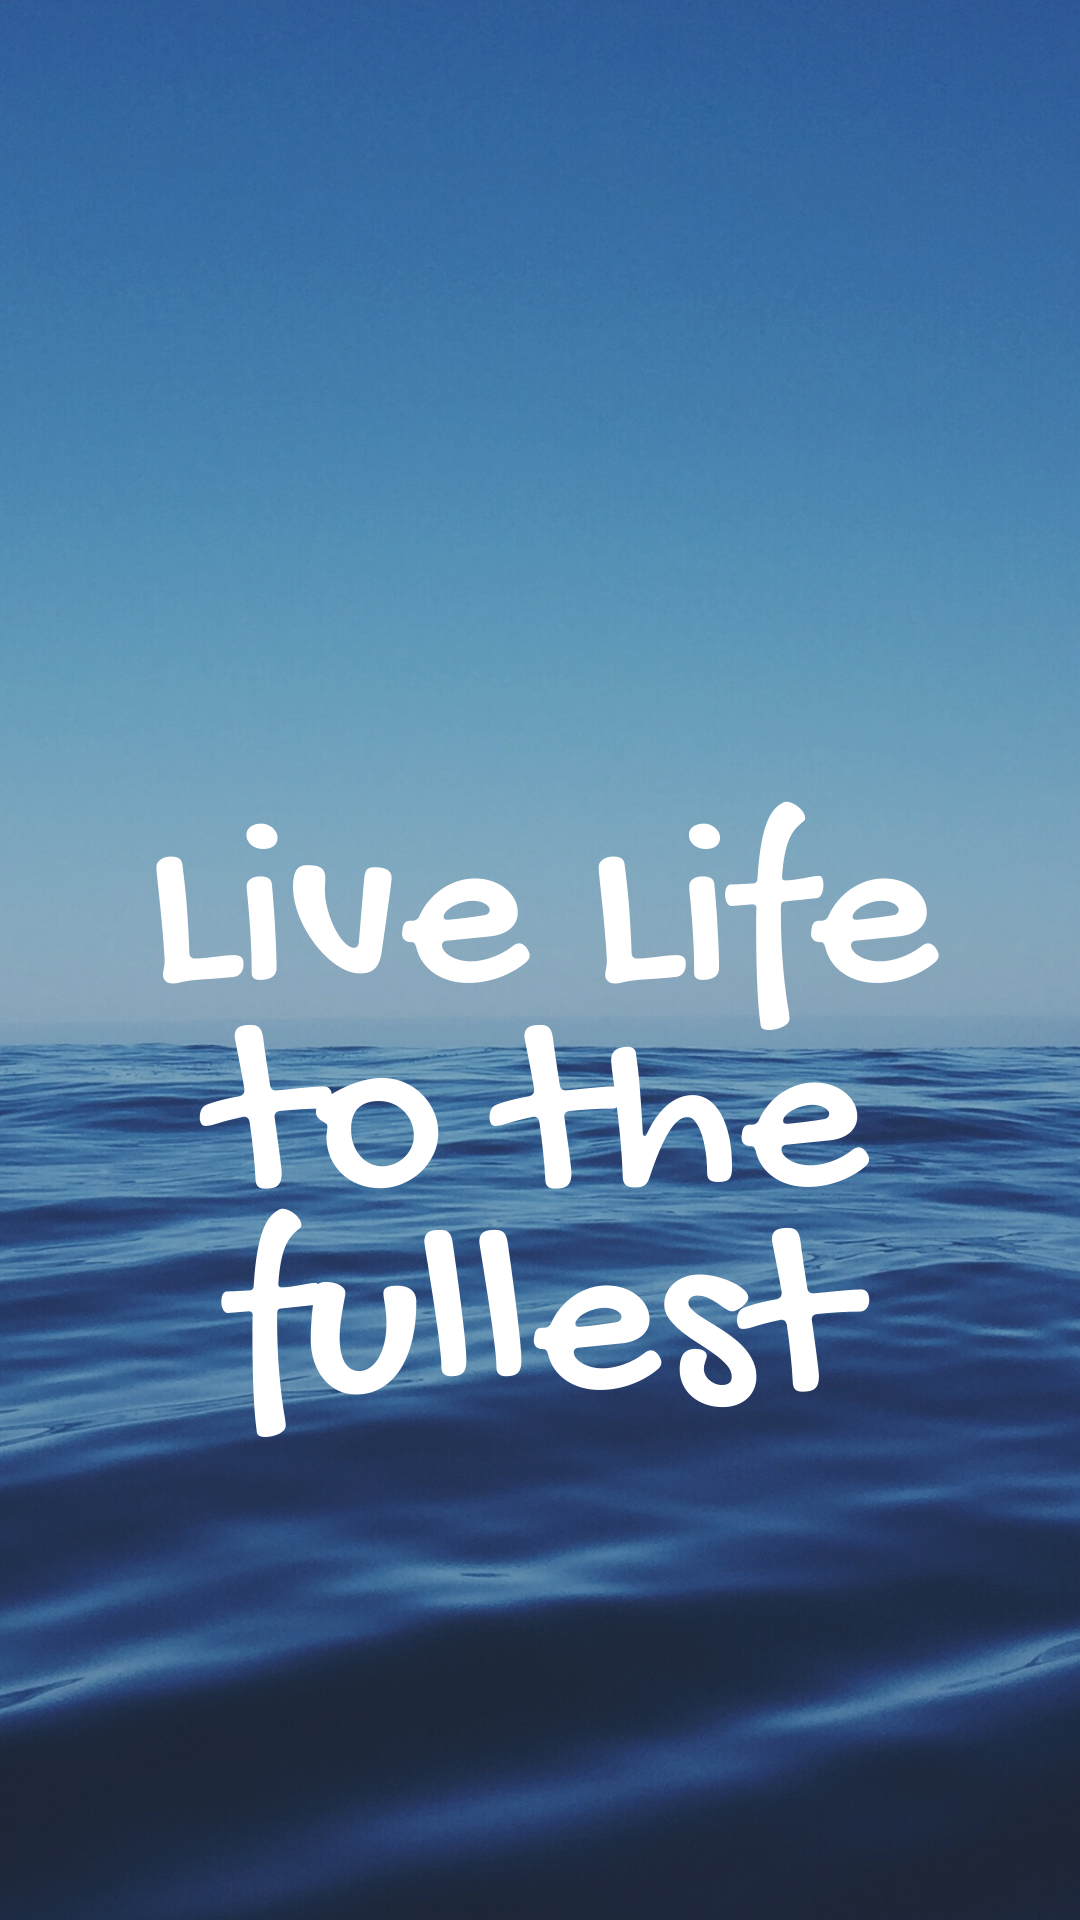 Phone Wallpaper With Quote Live Life To The Fullest Phone Wallpaper Quotes Live Life Life